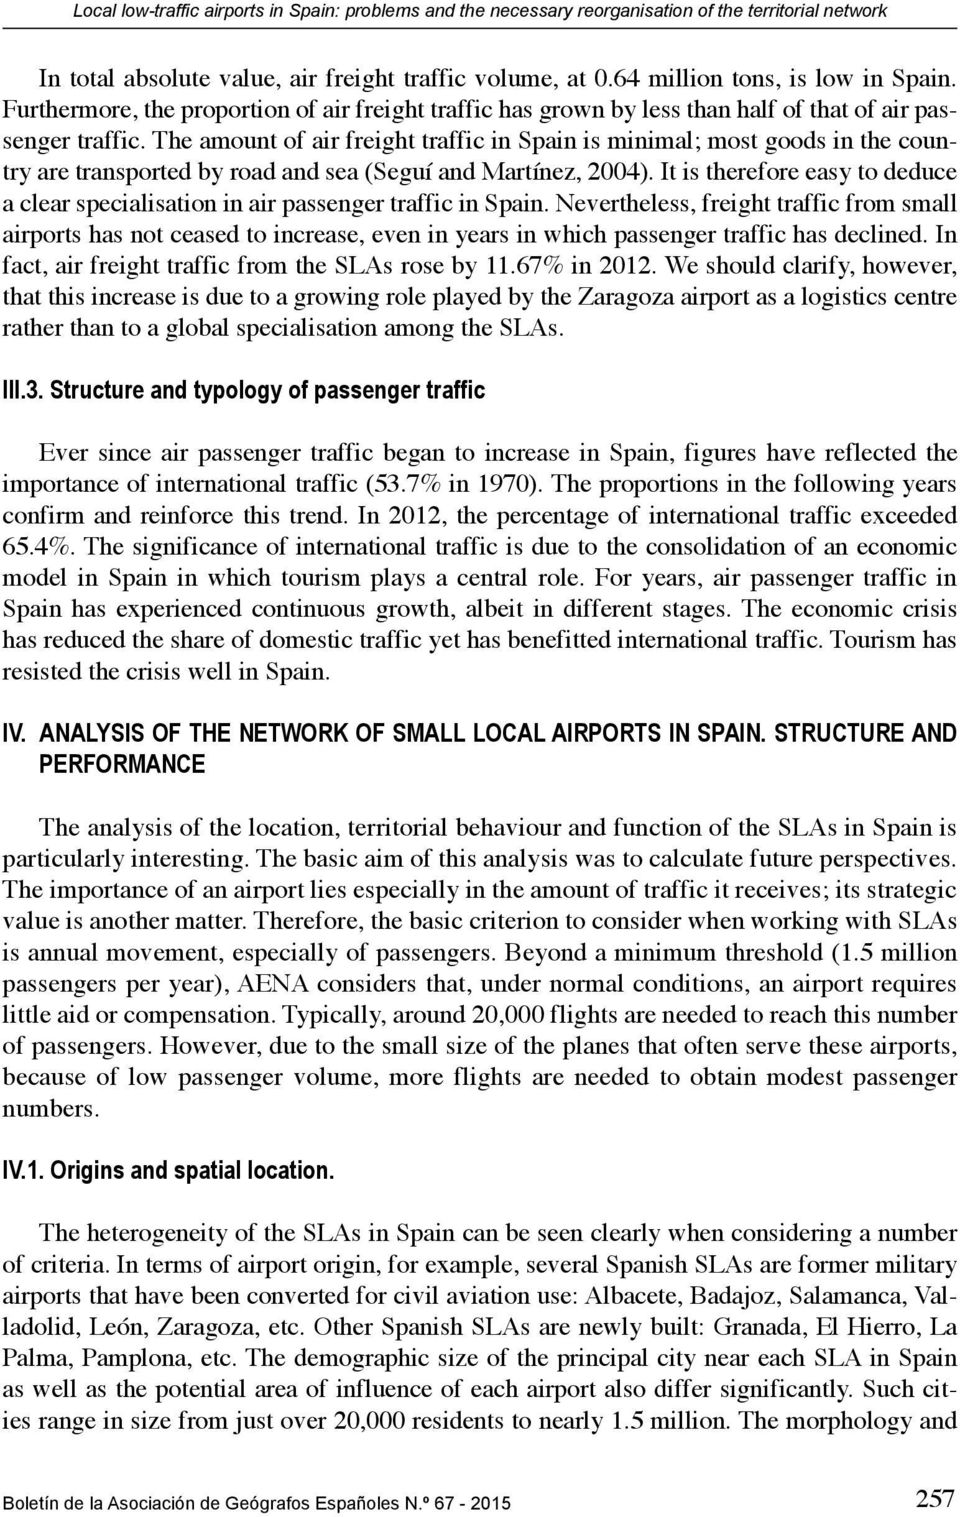 The amount of air freight traffic in Spain is minimal; most goods in the country are transported by road and sea (Seguí and Martínez, 2004).